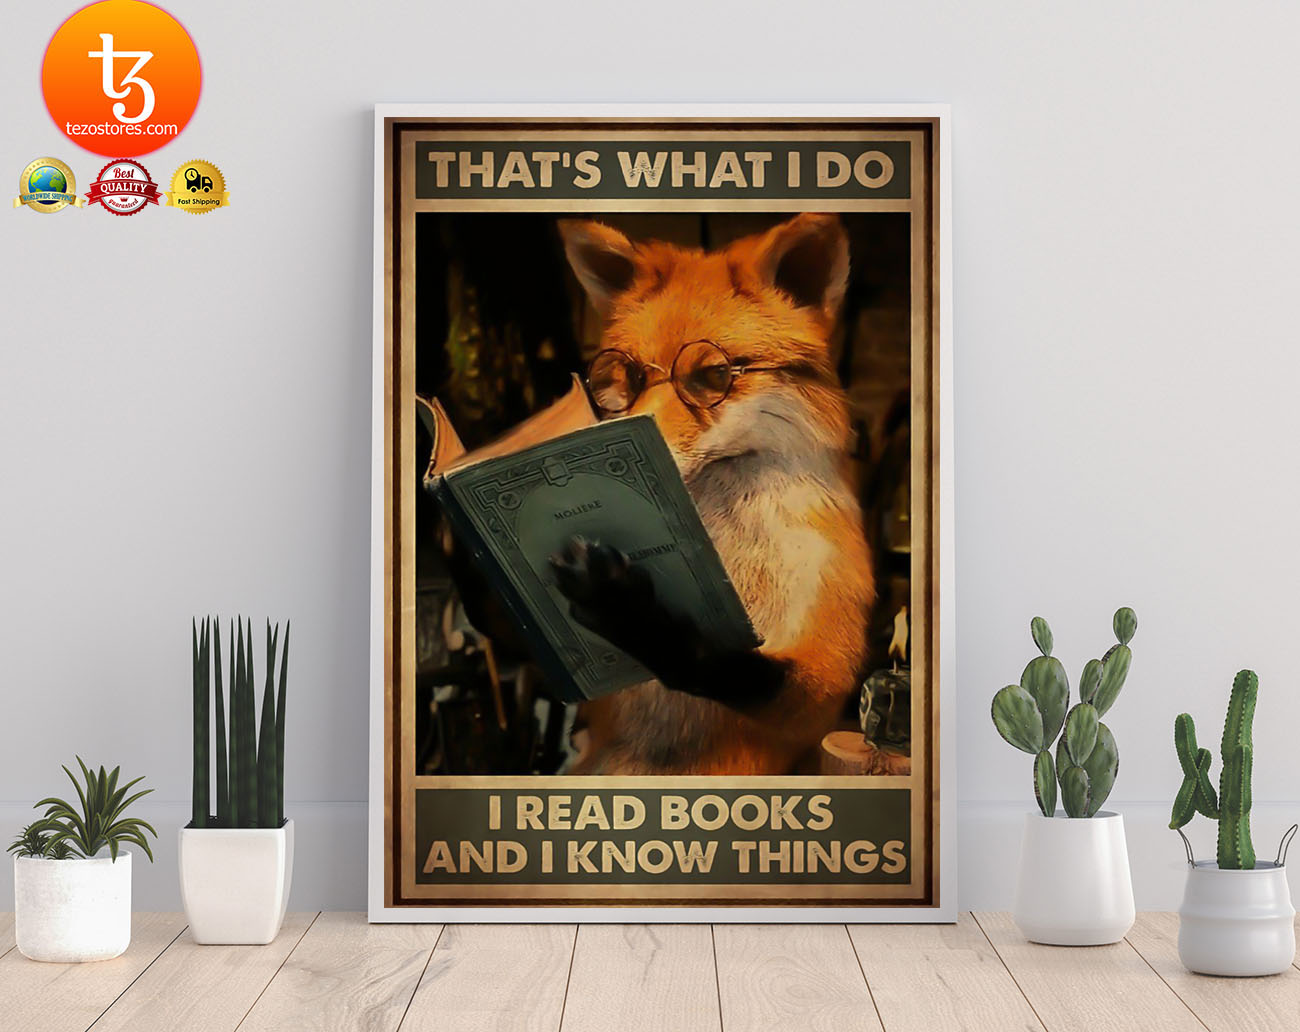 Fox that's what I do I read books and I know things poster 19